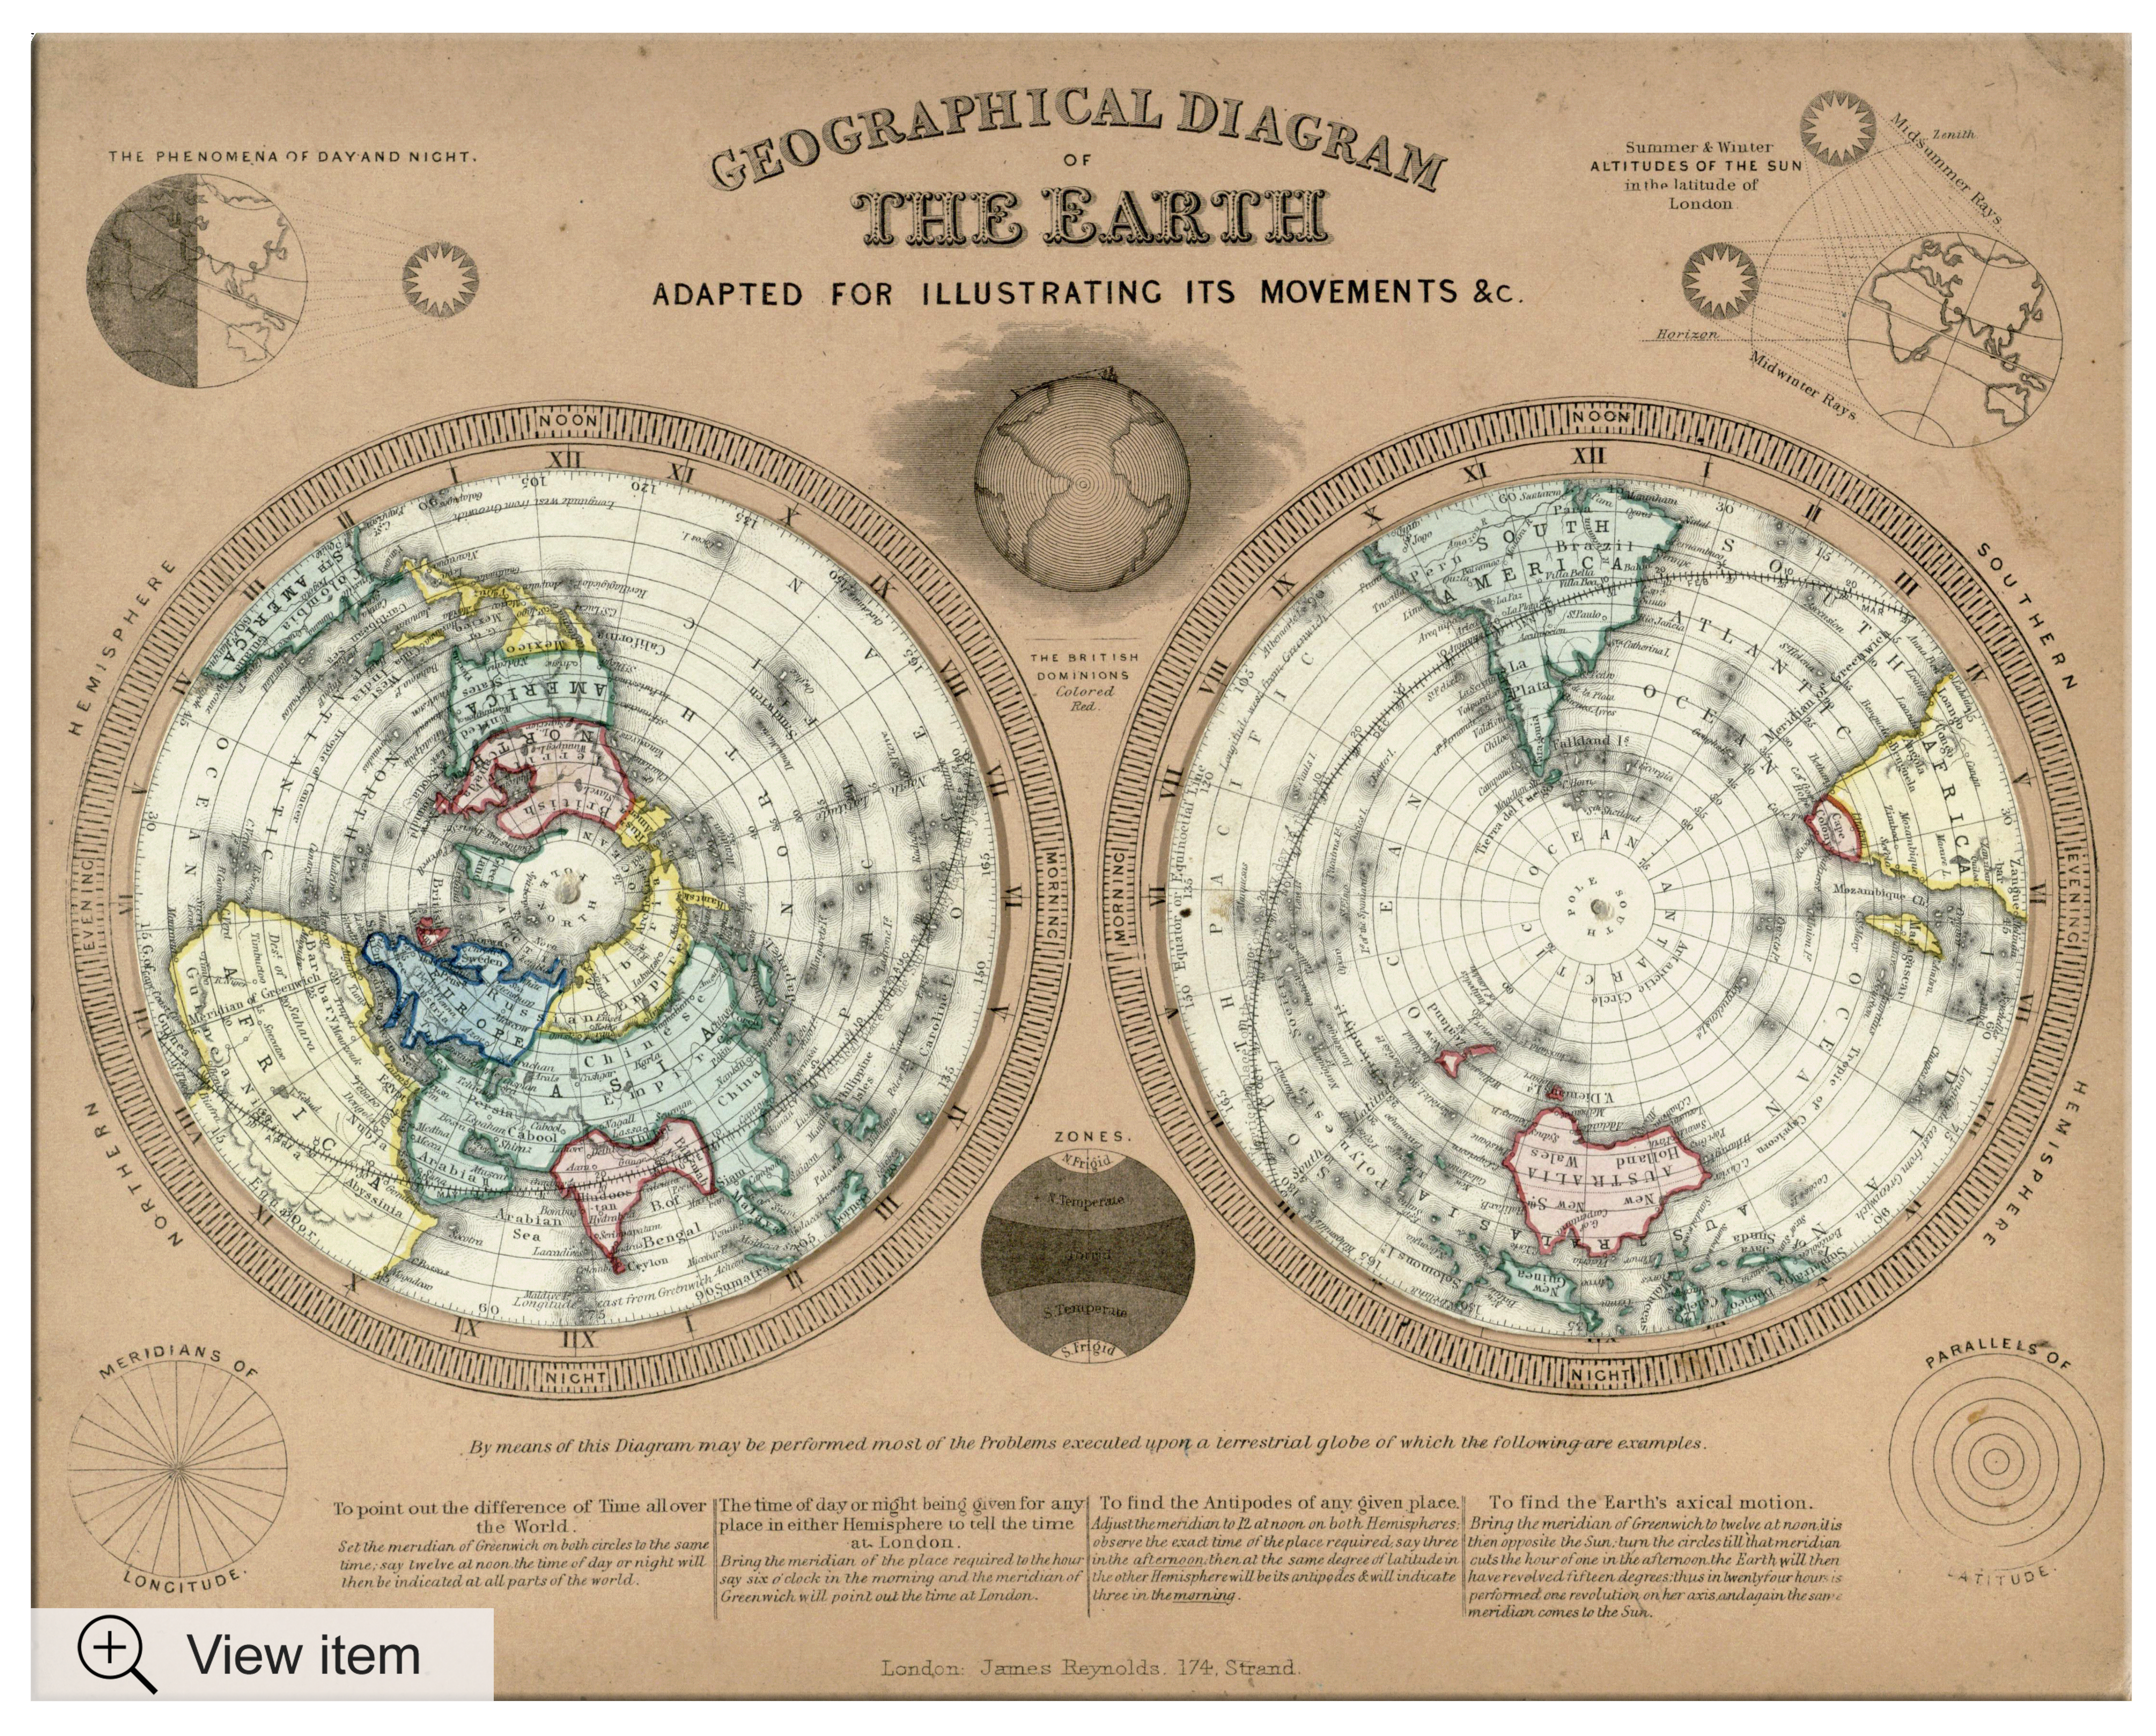 John Emslie's Geographical diagram of the earth adapted for illustrating its movements & c.